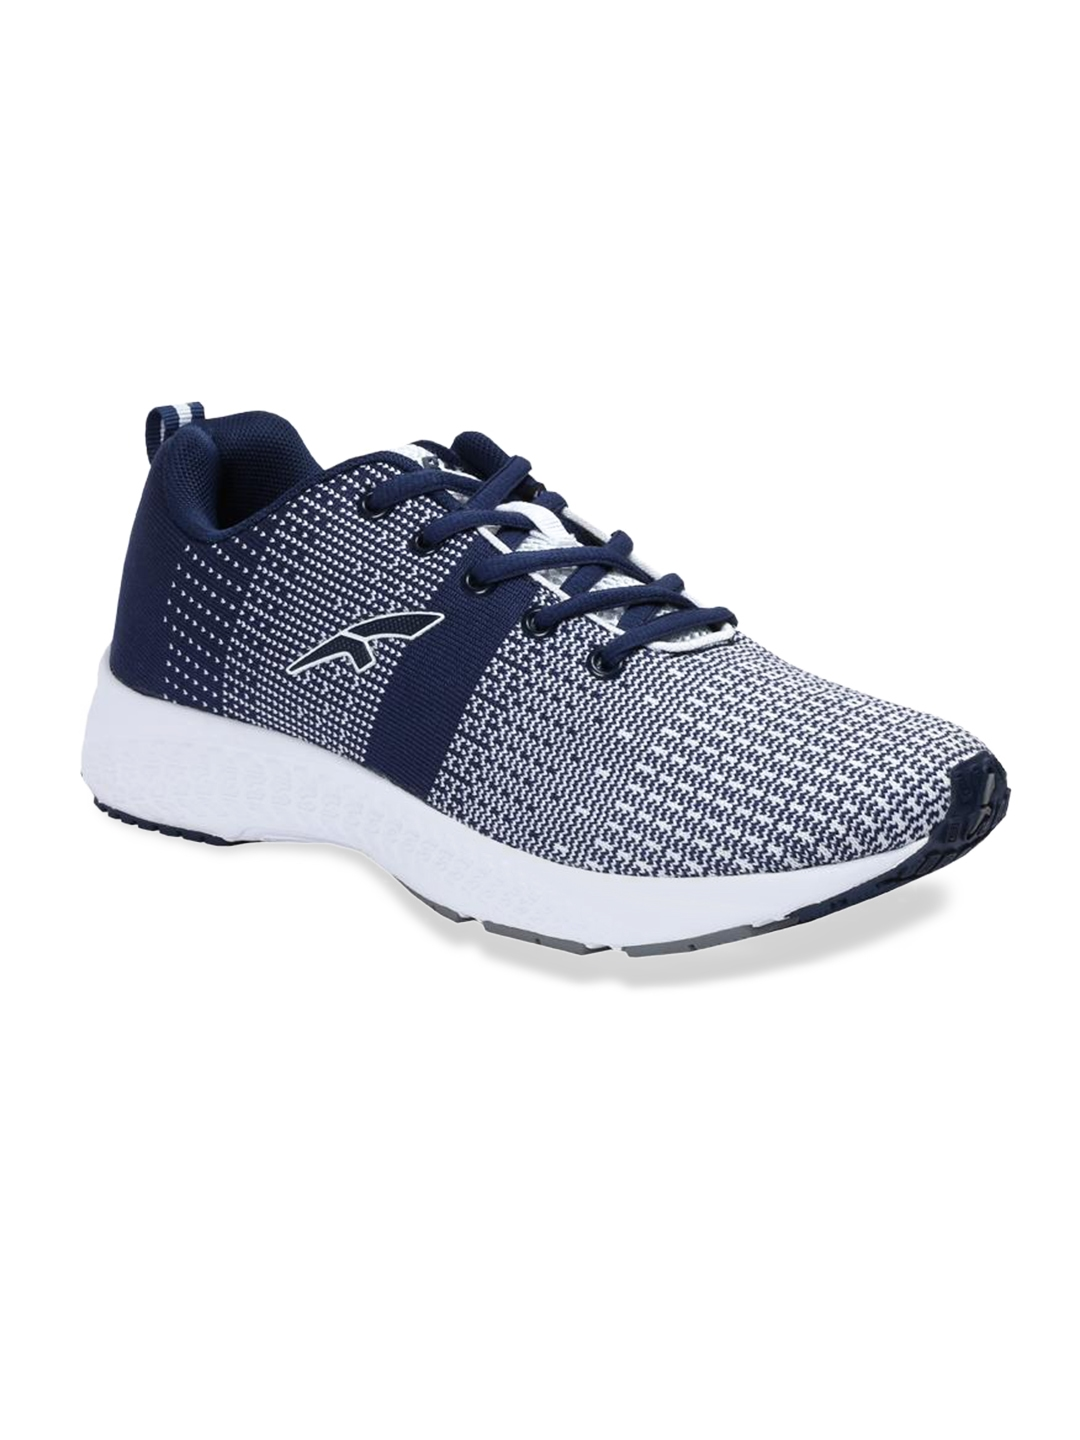 ee0fb4e6e27 FURO by Red Chief Men Navy Blue Mesh Mid-Top Running Shoes R1013 NAVY GREY